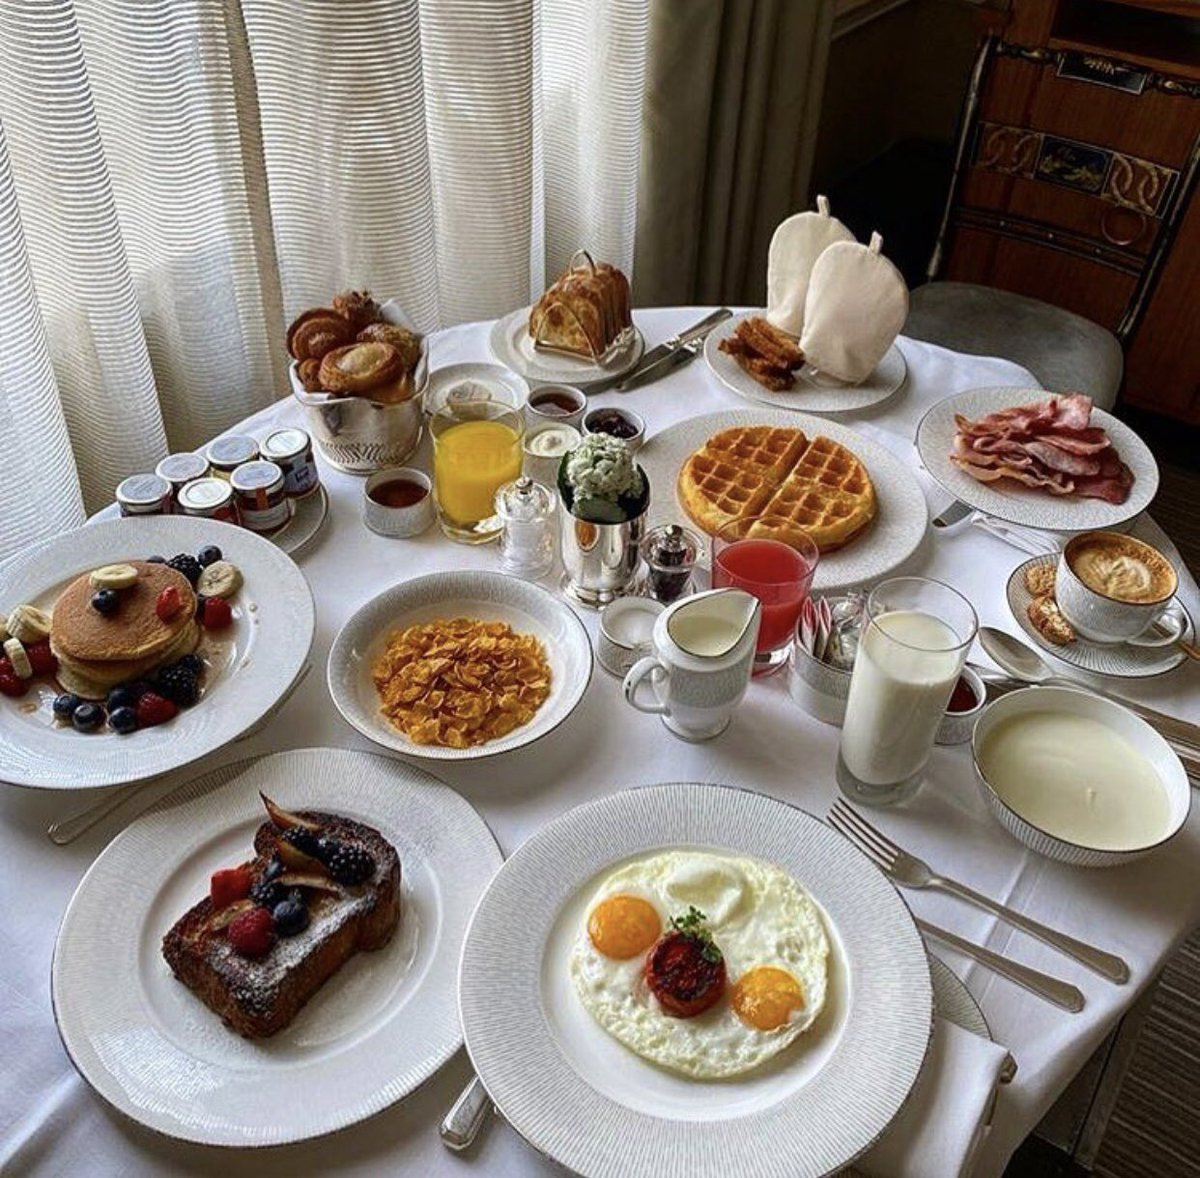 Weekend calls for room service 🍳 #alittlebitofeverything #riseandshine #happyweekend #theconnaught thank you @margimanu https://t.co/YSb4L9OydW